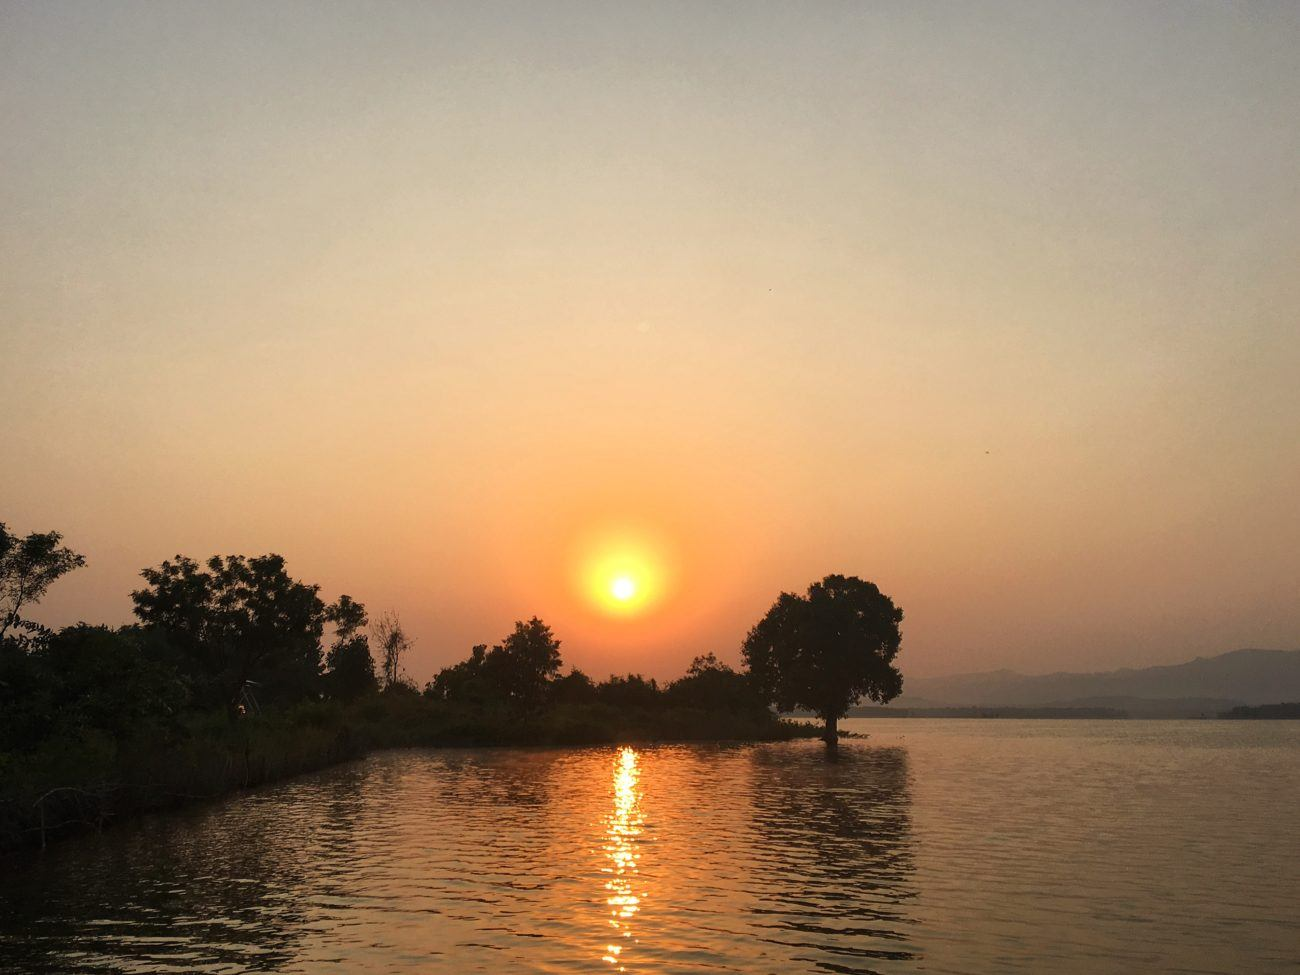 A gorgeous sunrise welcomes people to the Satpura Tiger Reserve in Madhya Pradesh